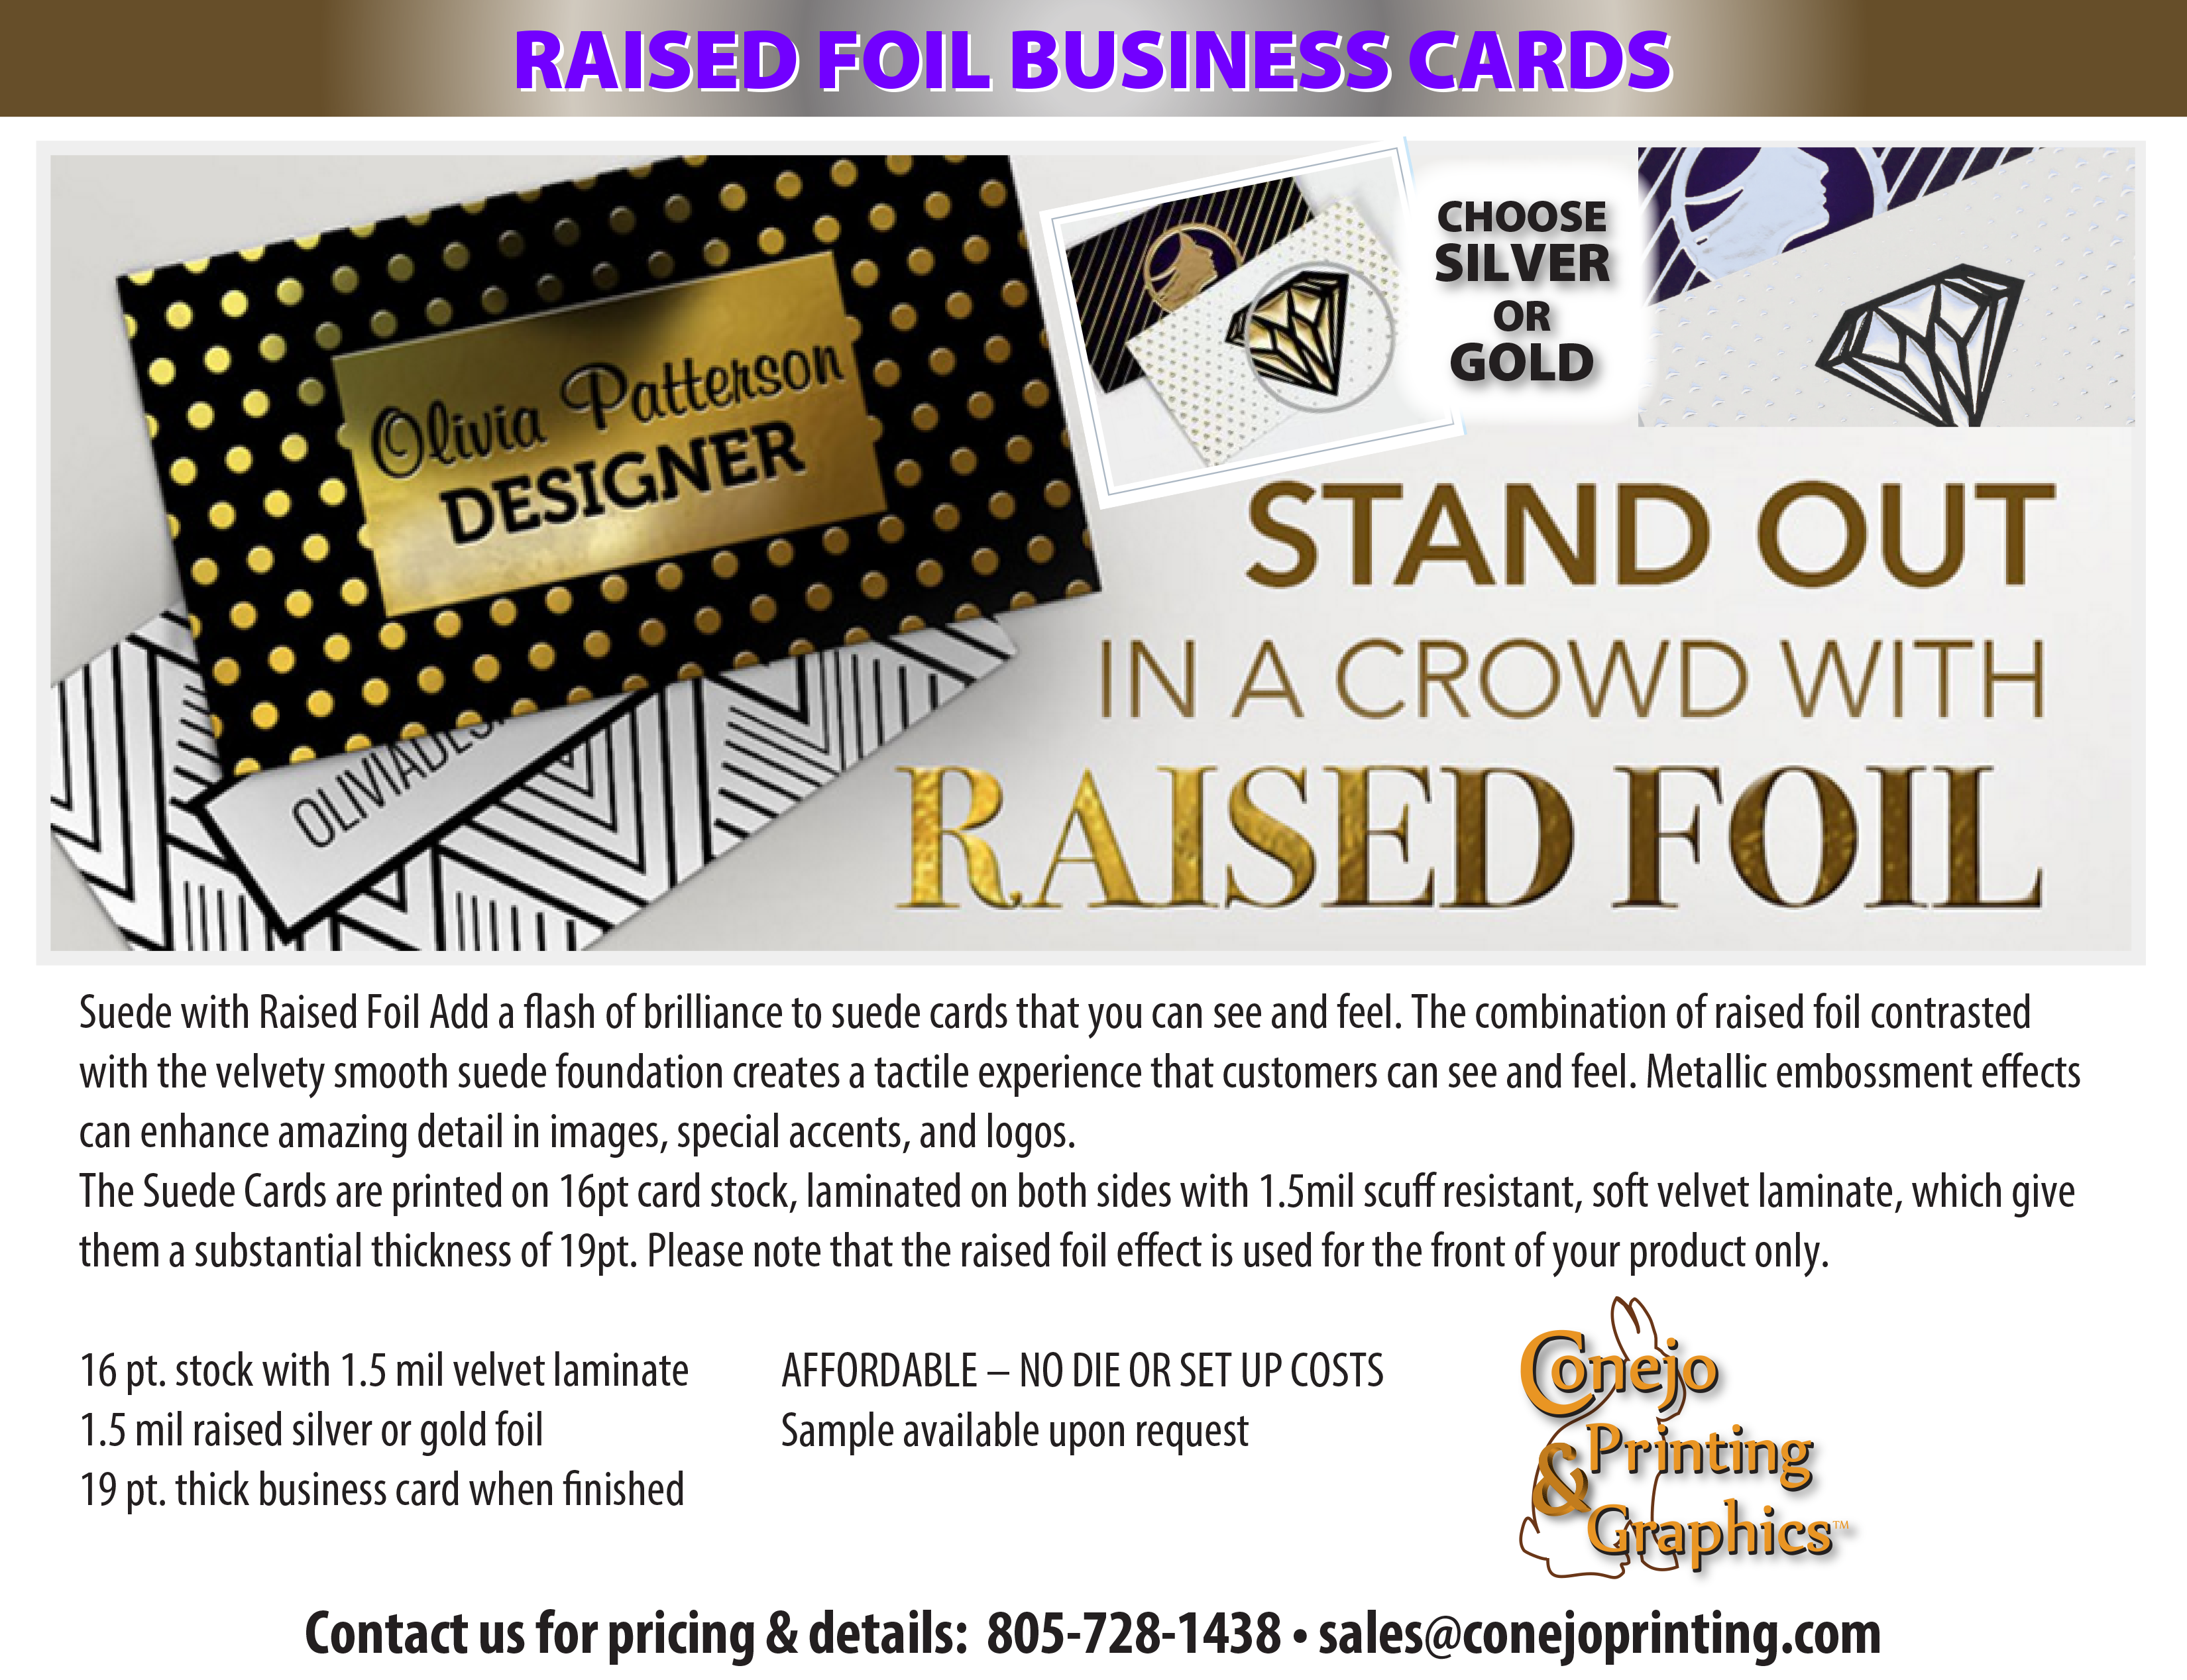 Raised Foil Business Cards   Conejo Printing and Graphics   Art ...